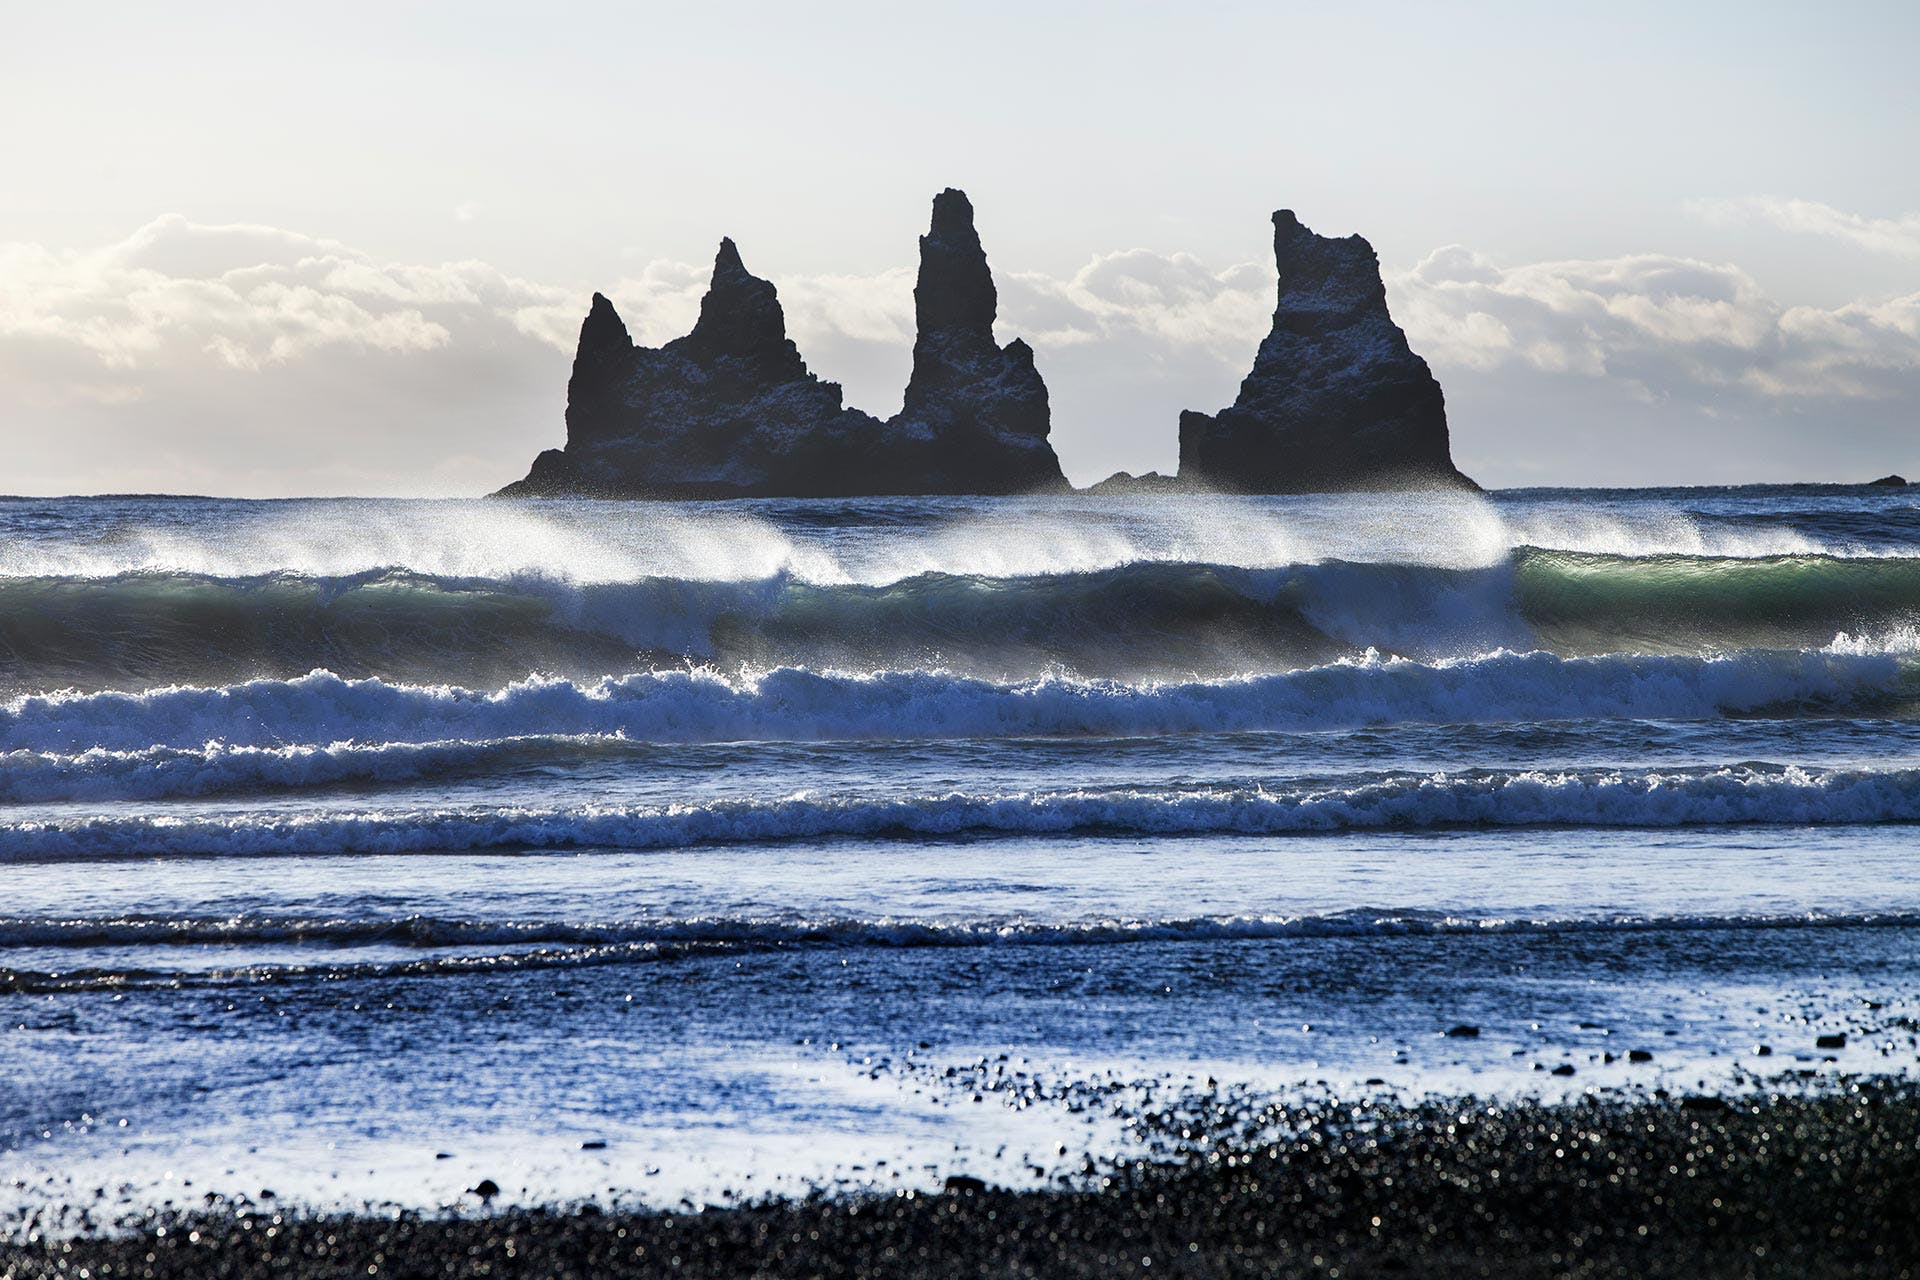 Reynisdrangar cliffs rising from the ocean